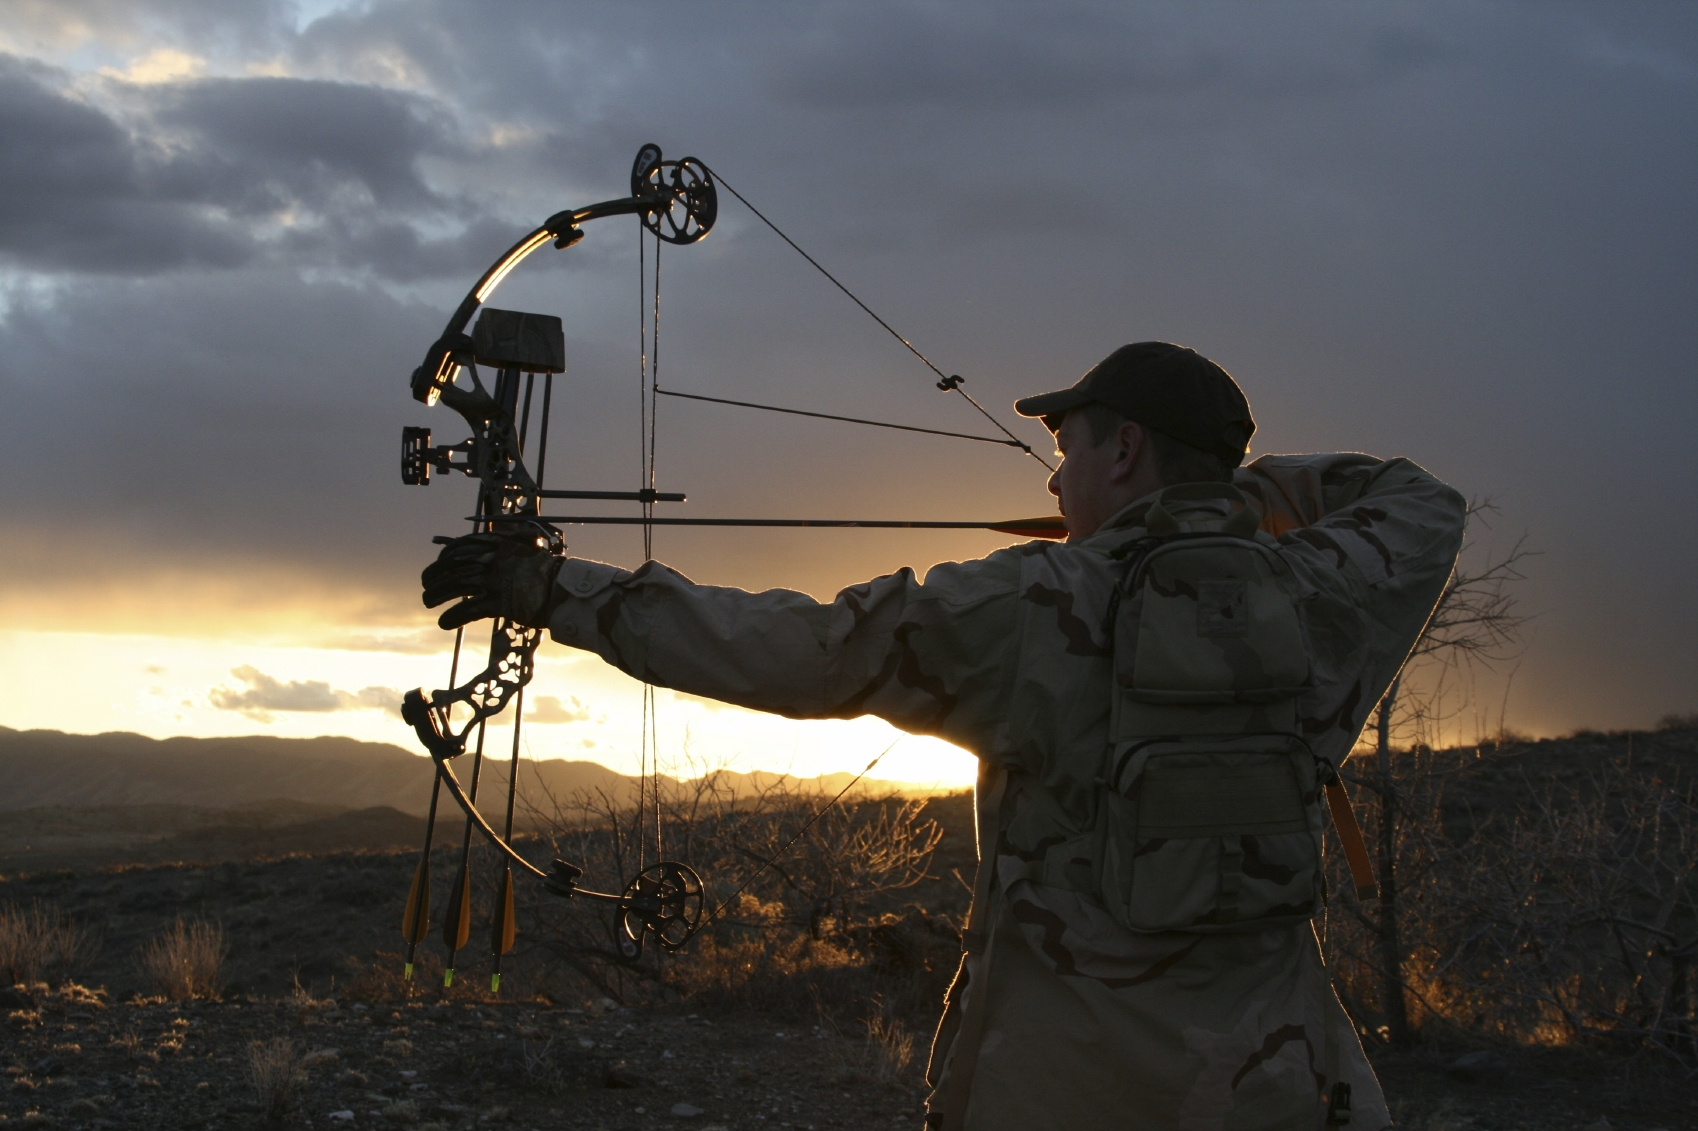 Pricepoints for Compound bow fishing